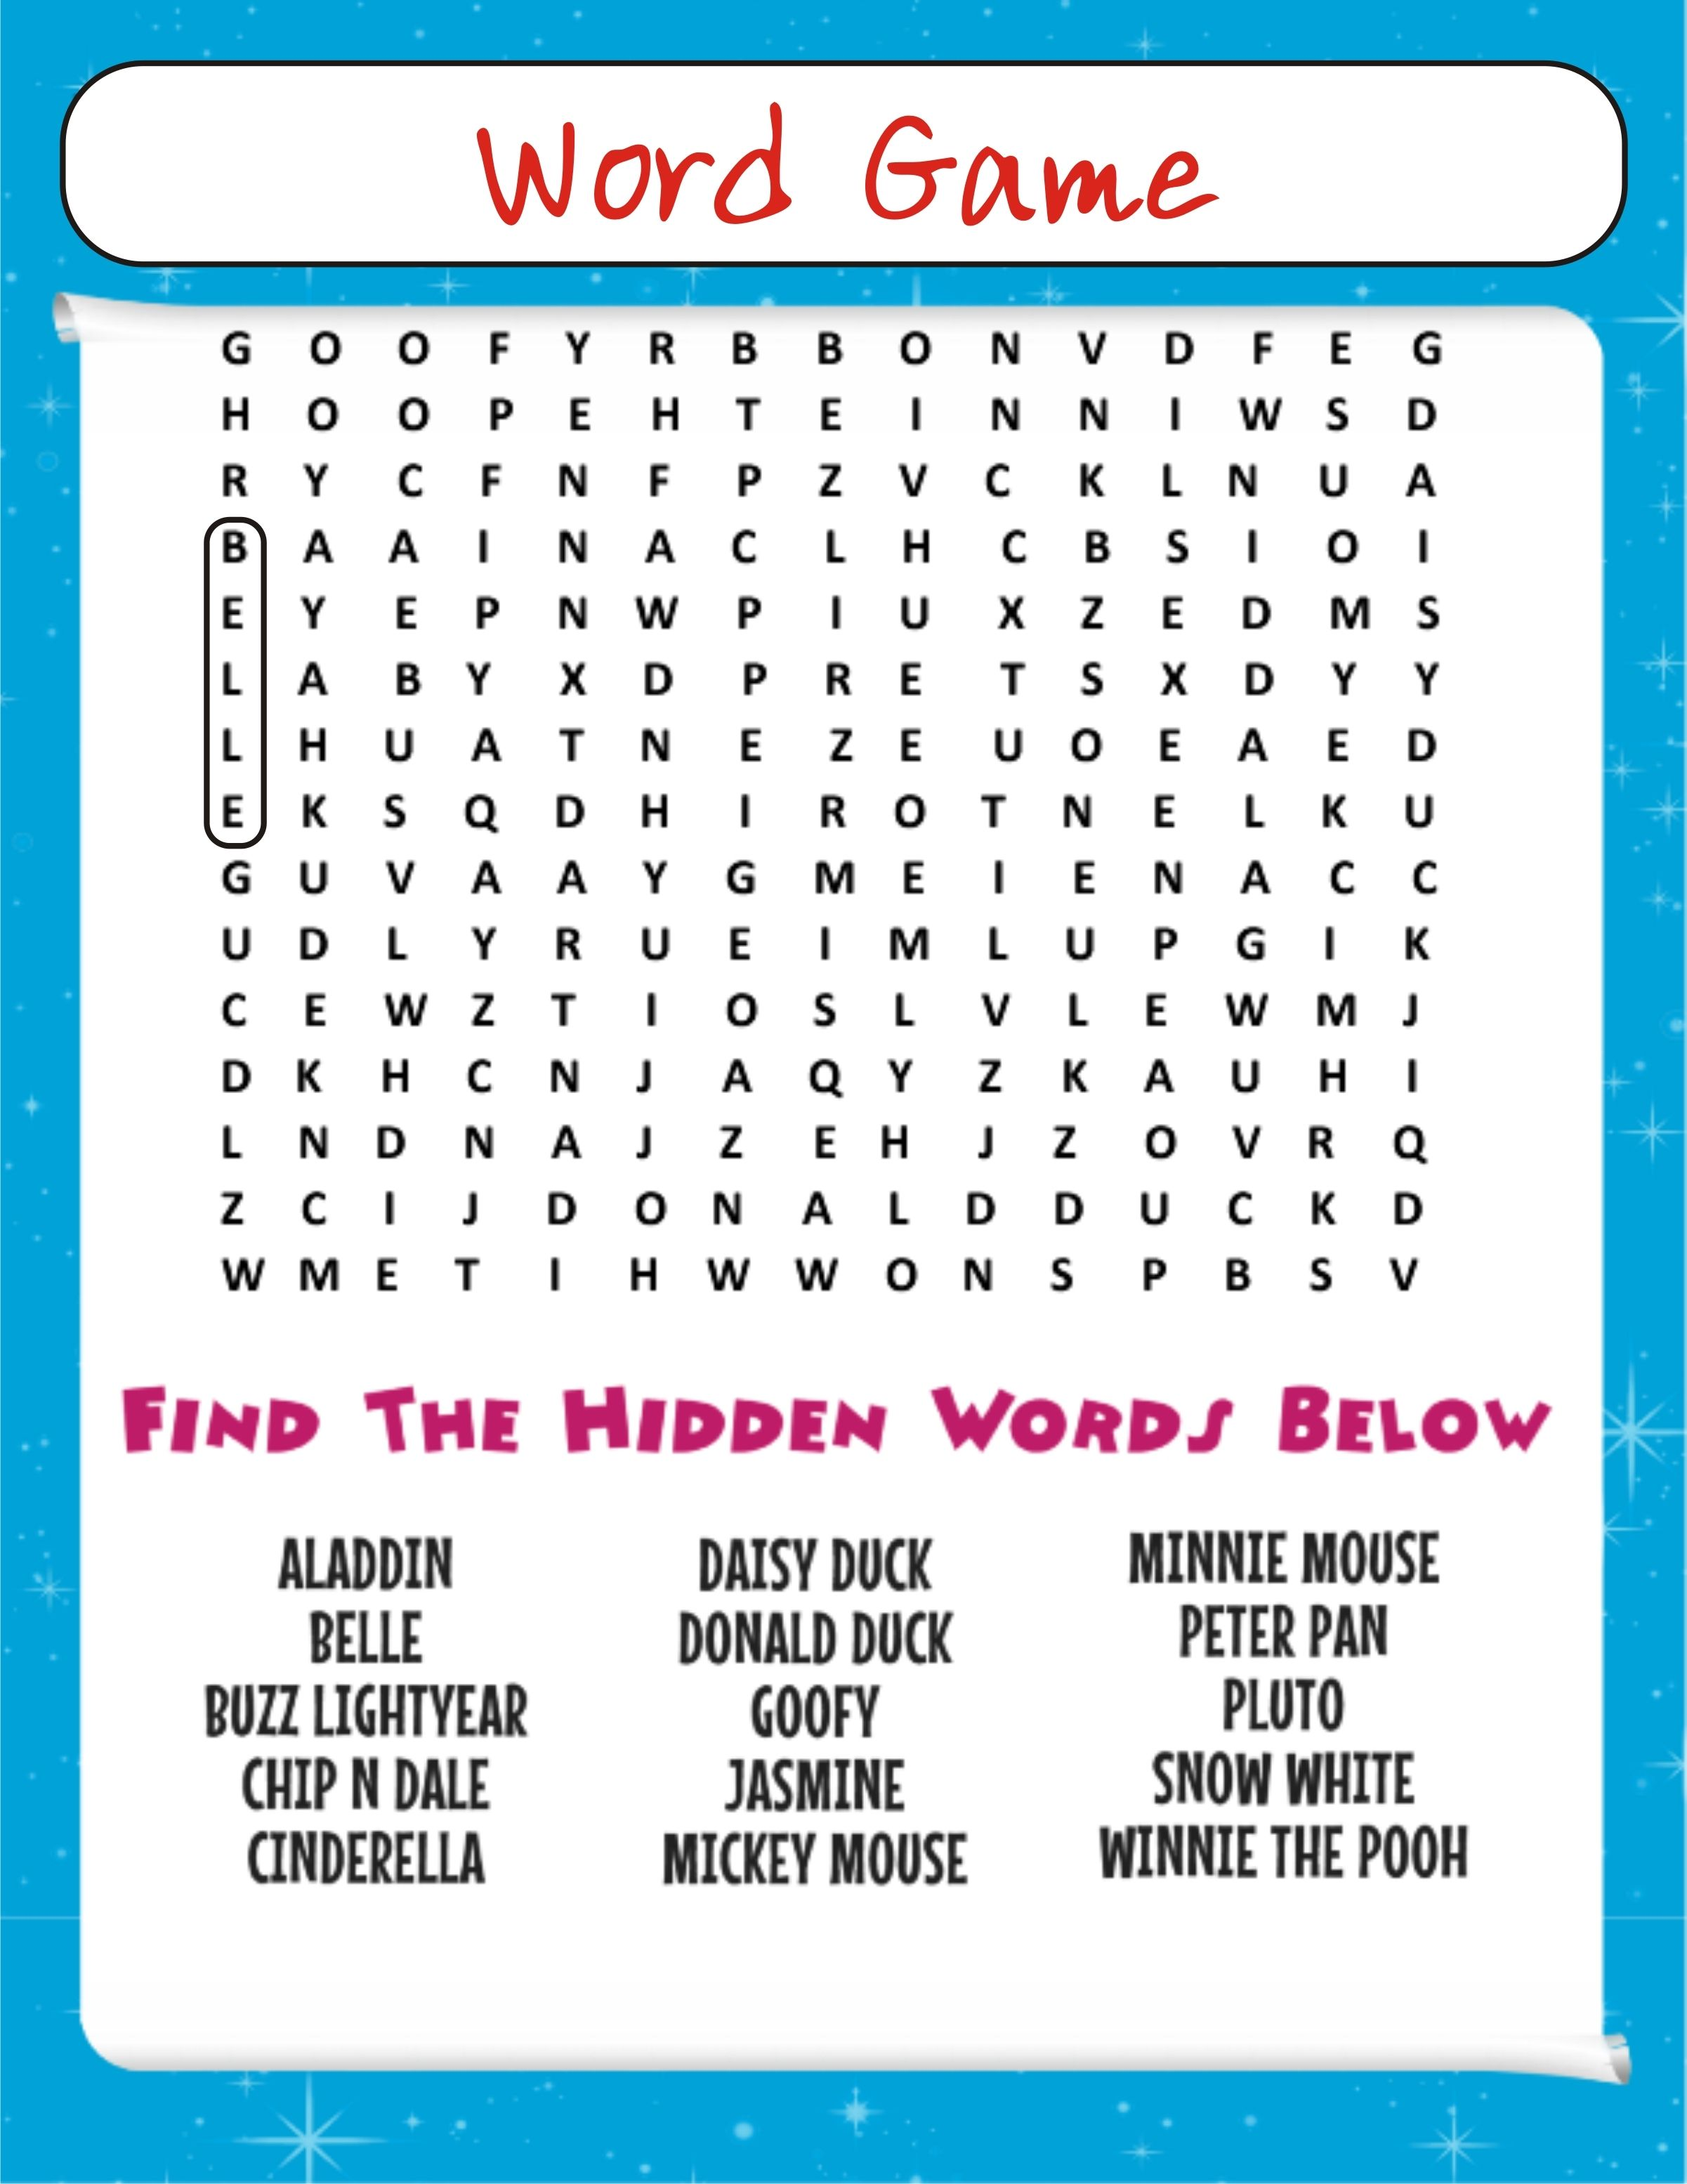 challenging word game for #kids of all ages to #practice #vocabulary skills.